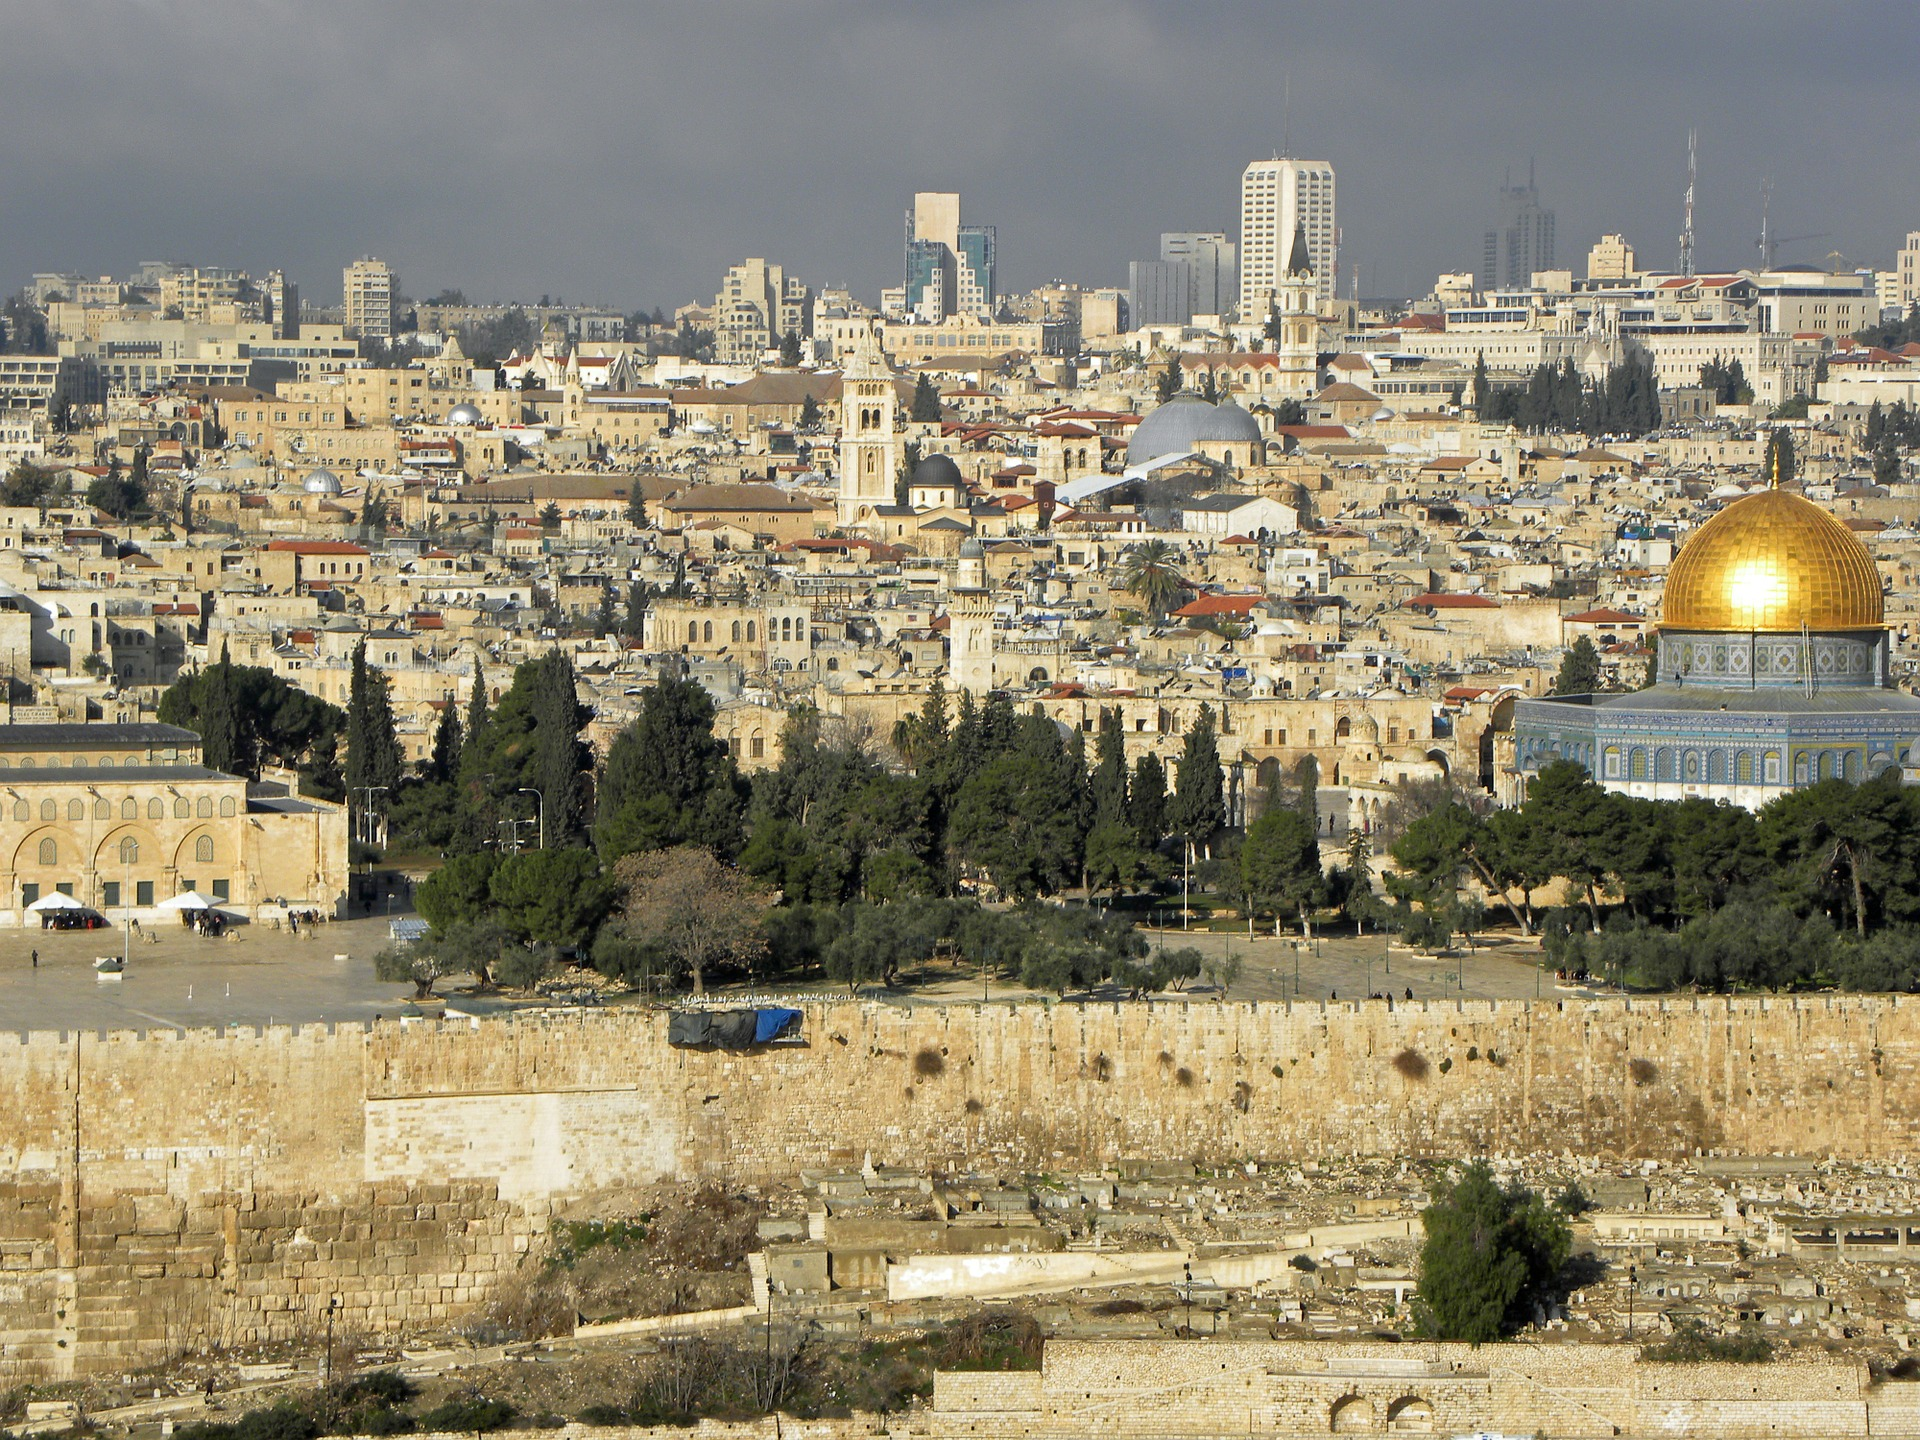 Hope 10 Mission: Develop a Creative Solution to the Jerusalem/Palestinian Conflict